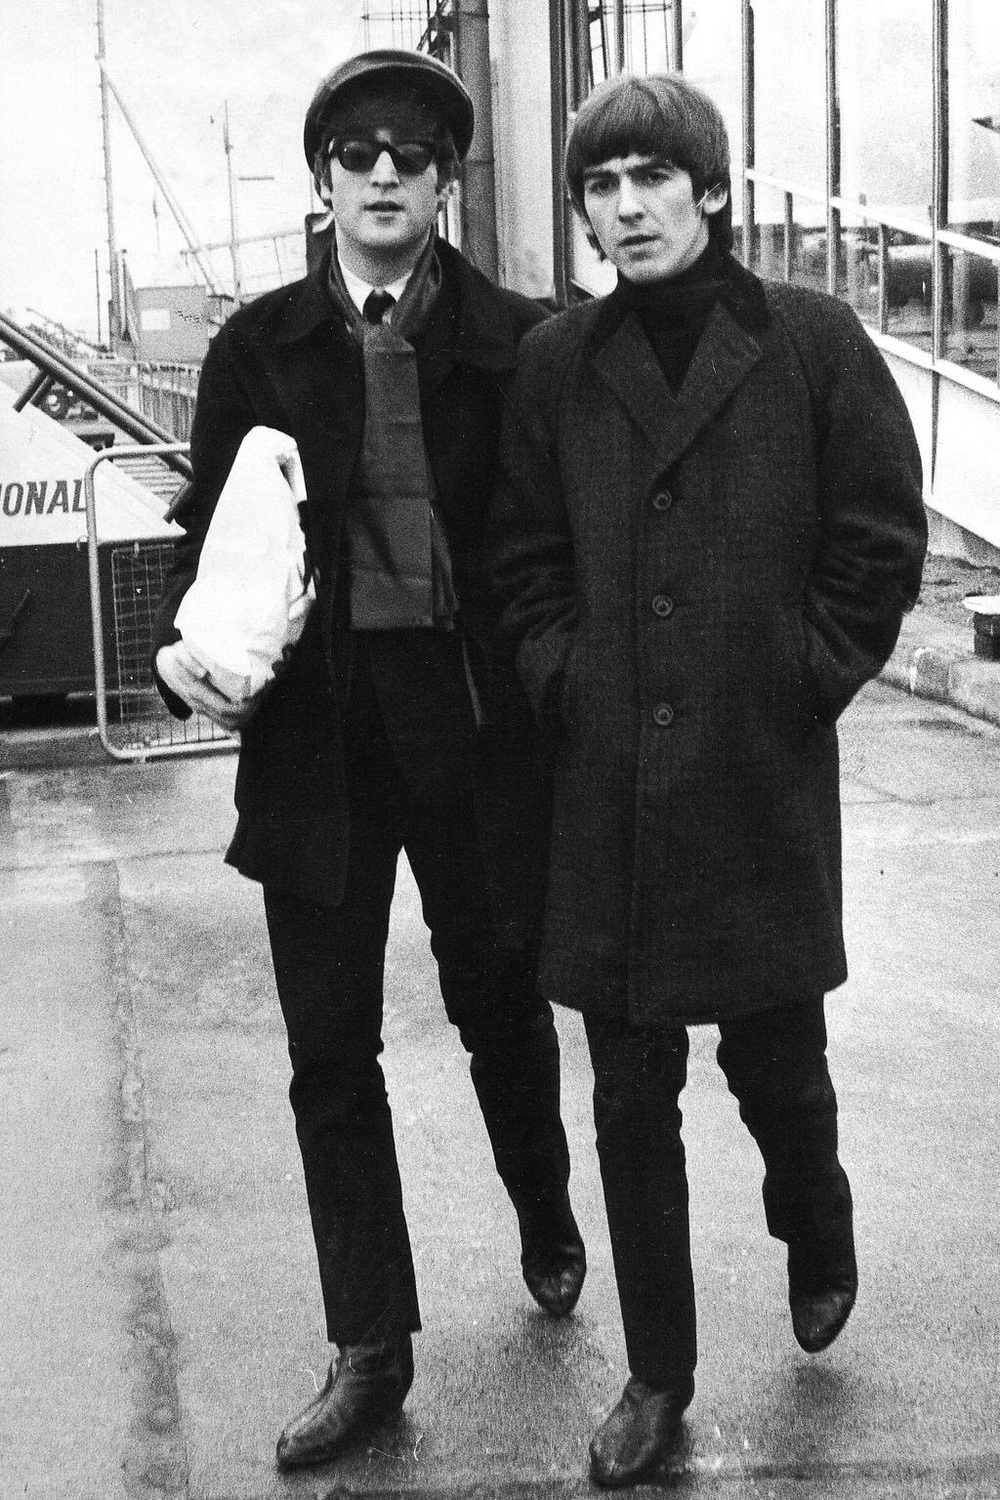 John Lennon and George Harrison, 1964.